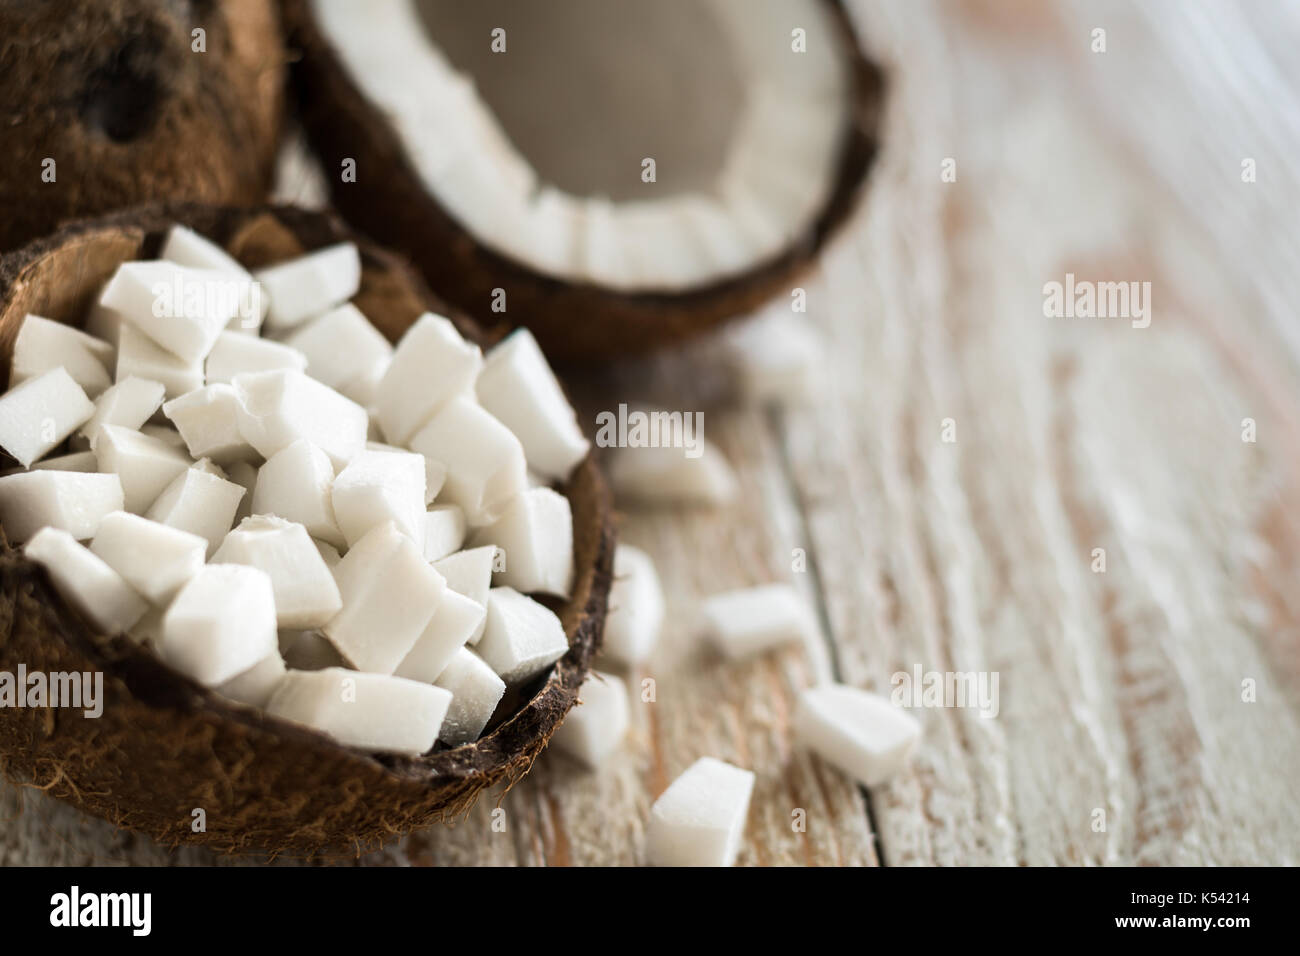 Coconut pieces in shell with coconut on background - Stock Image